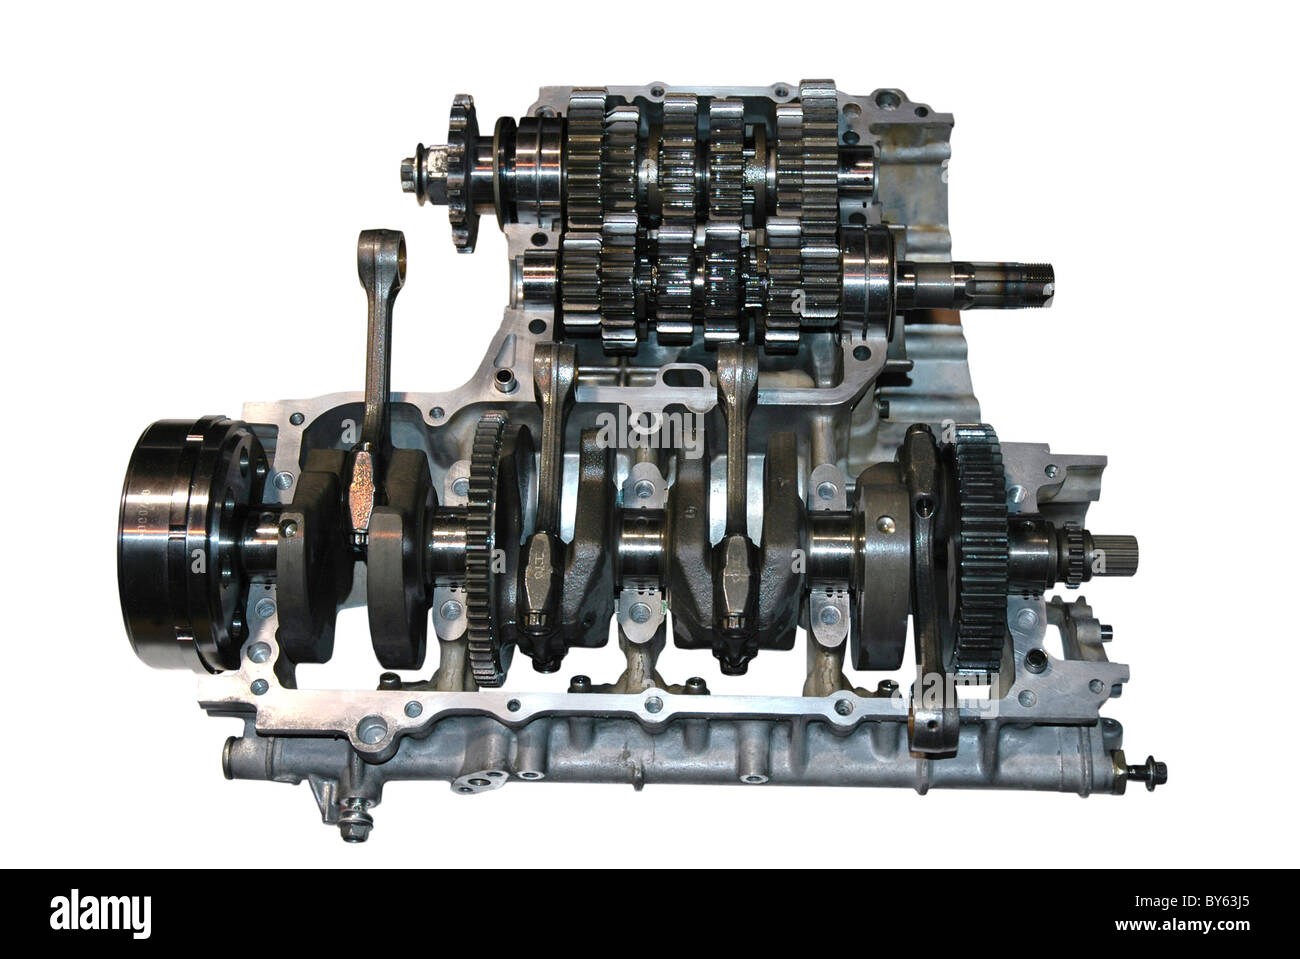 Car engine part - Close up image of an internal combustion engine Stock Photo